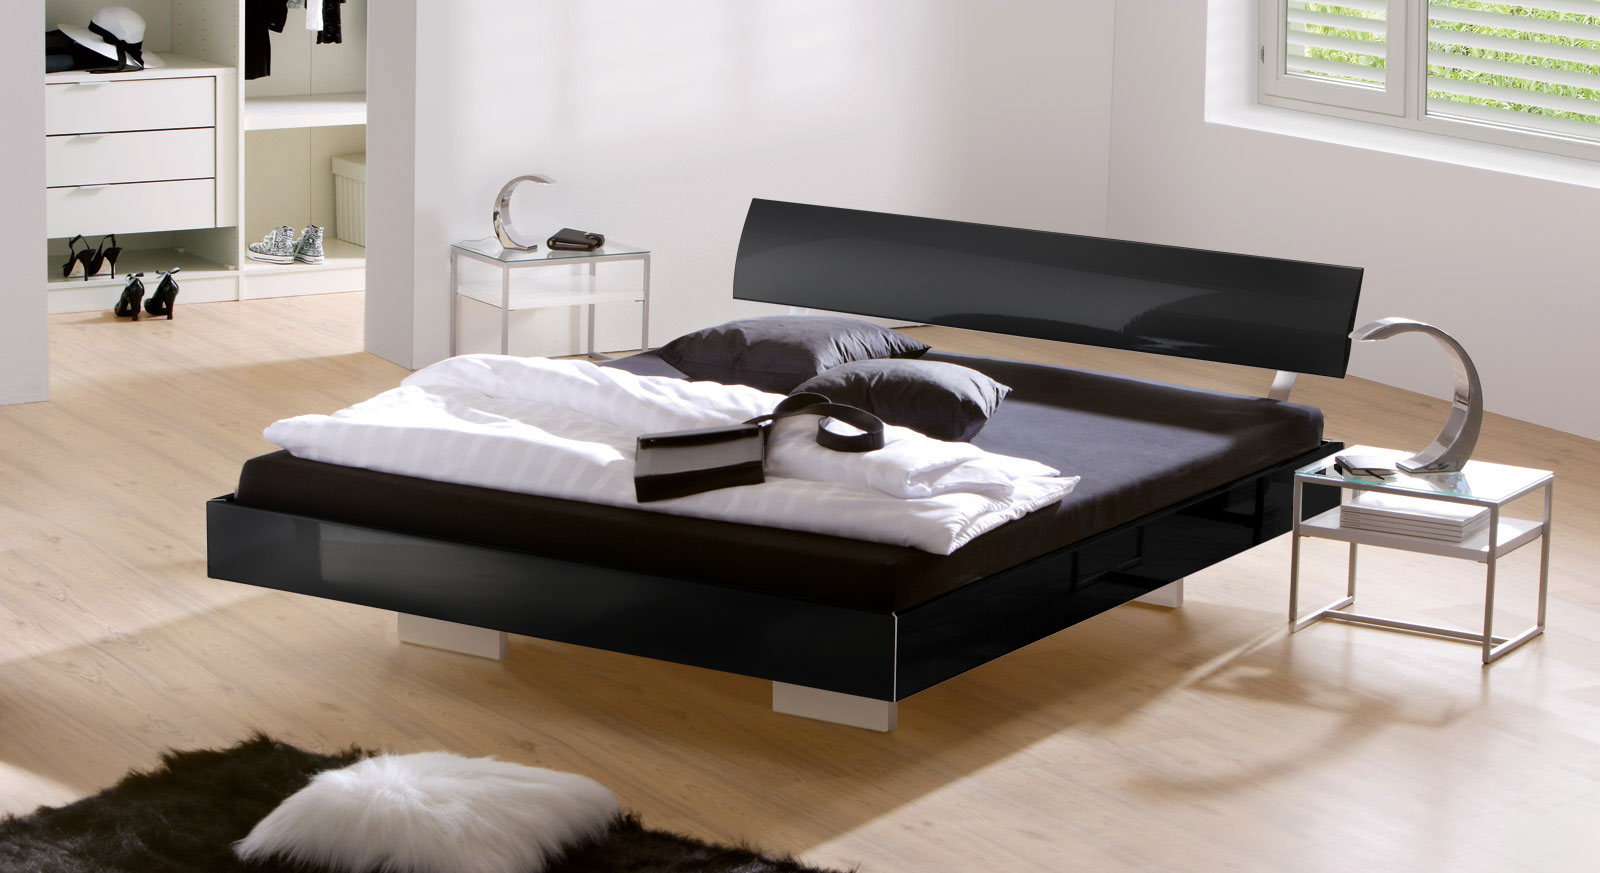 edles hochglanz schwebebett in schwarz z b 140x200 cm. Black Bedroom Furniture Sets. Home Design Ideas